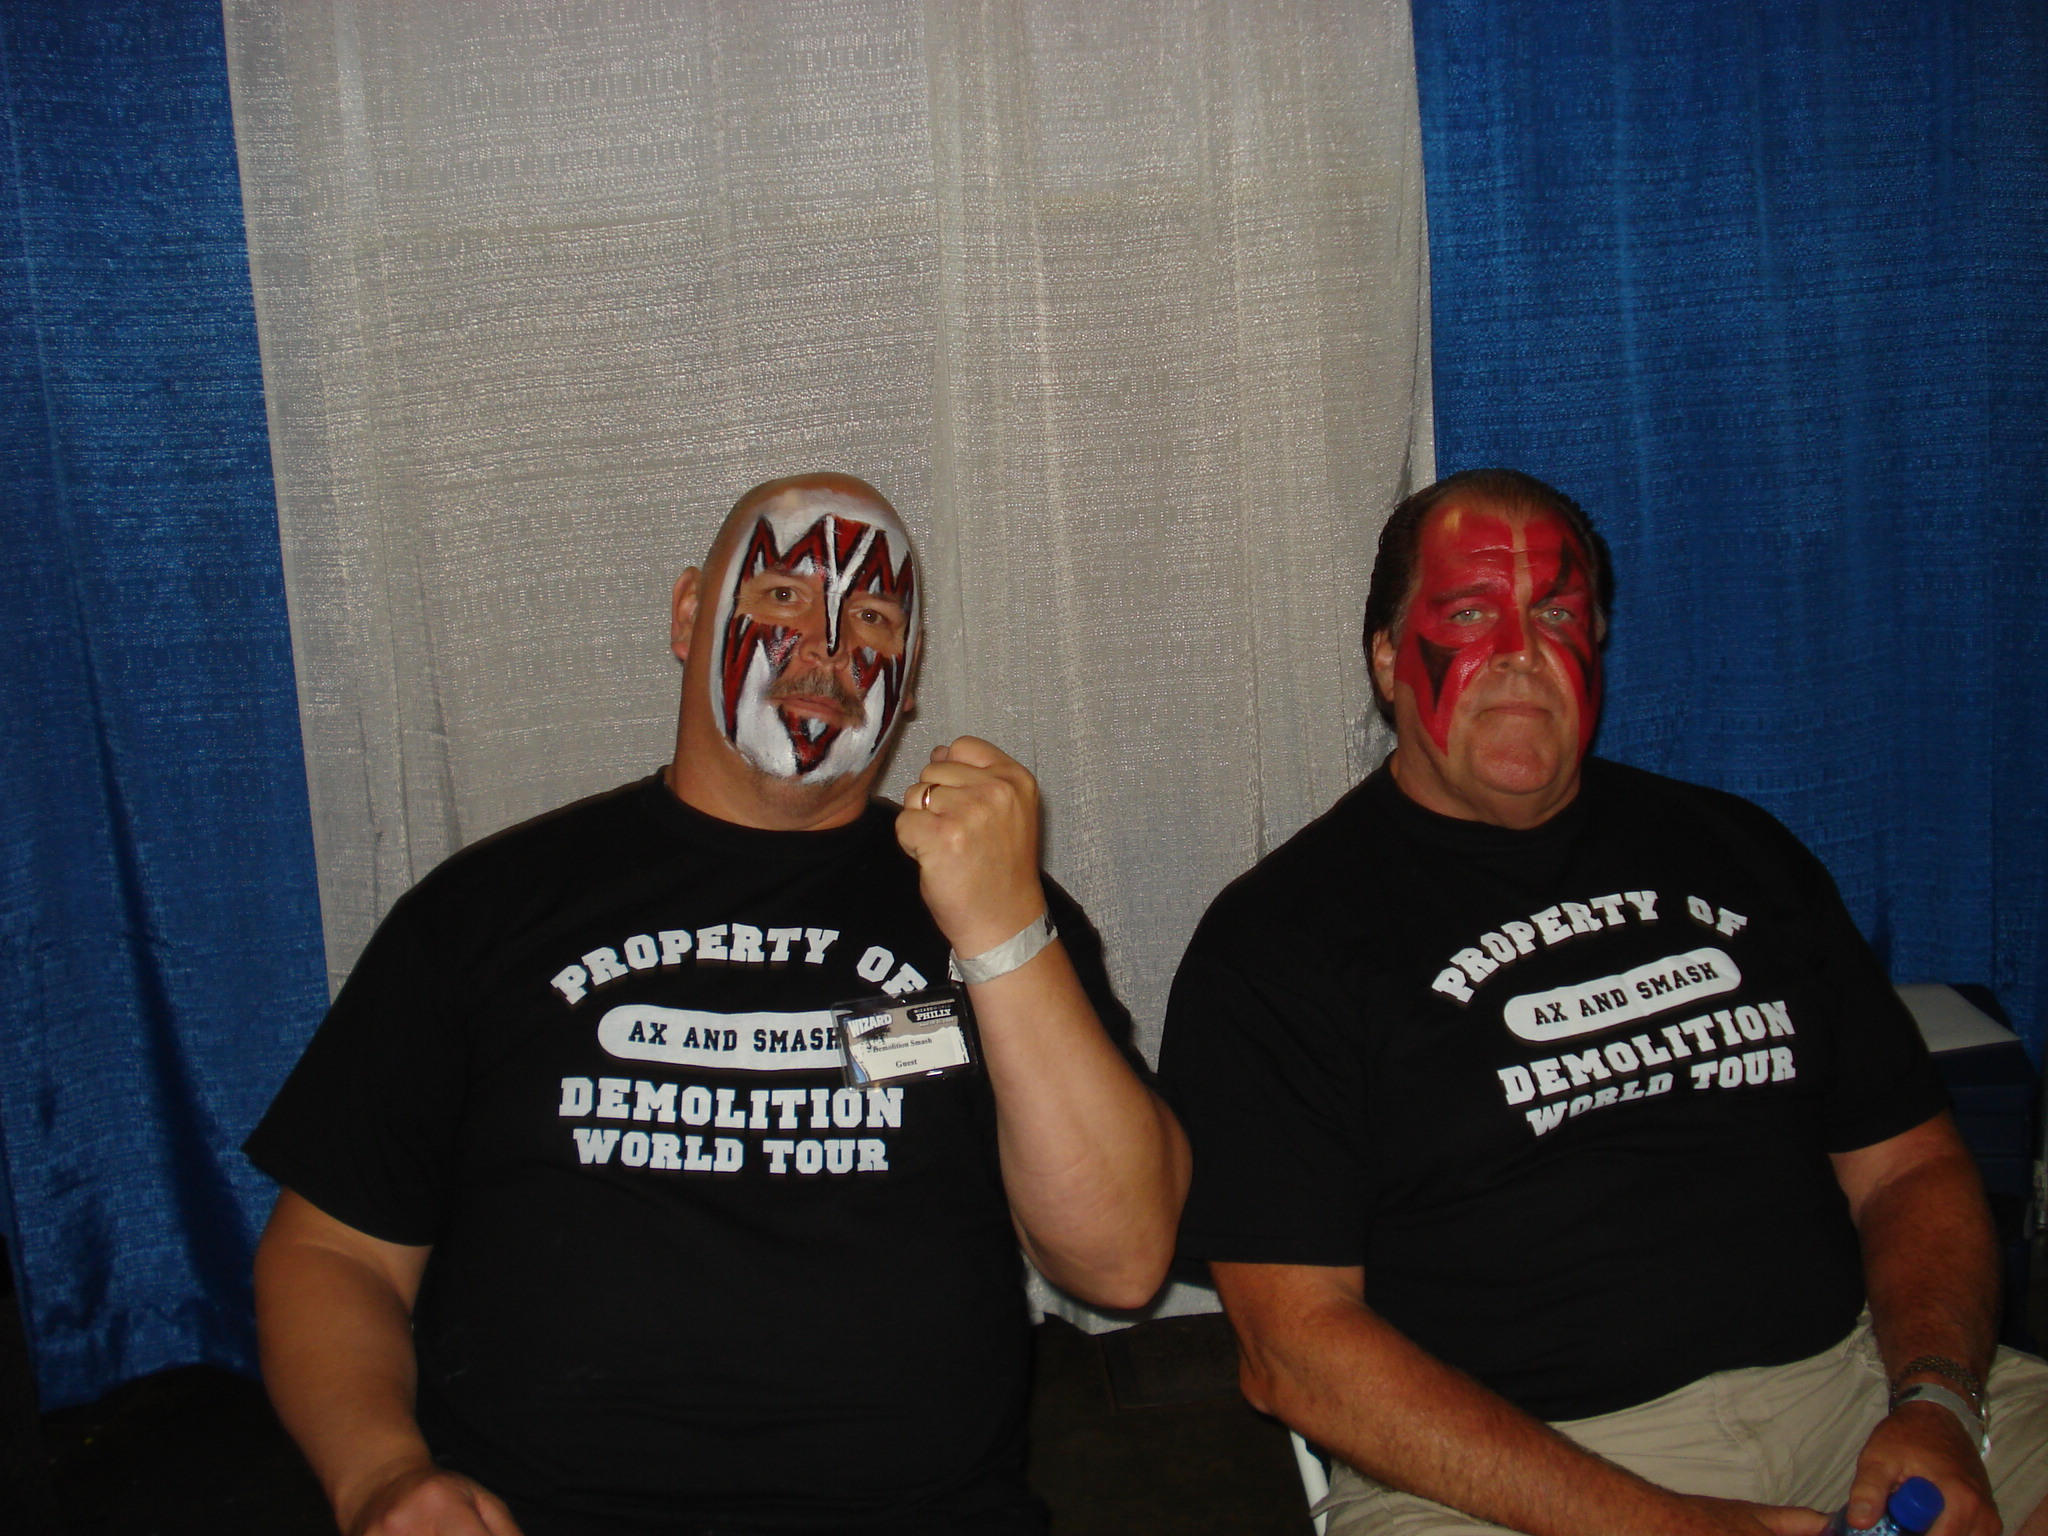 Wizard World Philly 2009 – Demolition, Ax & Smash